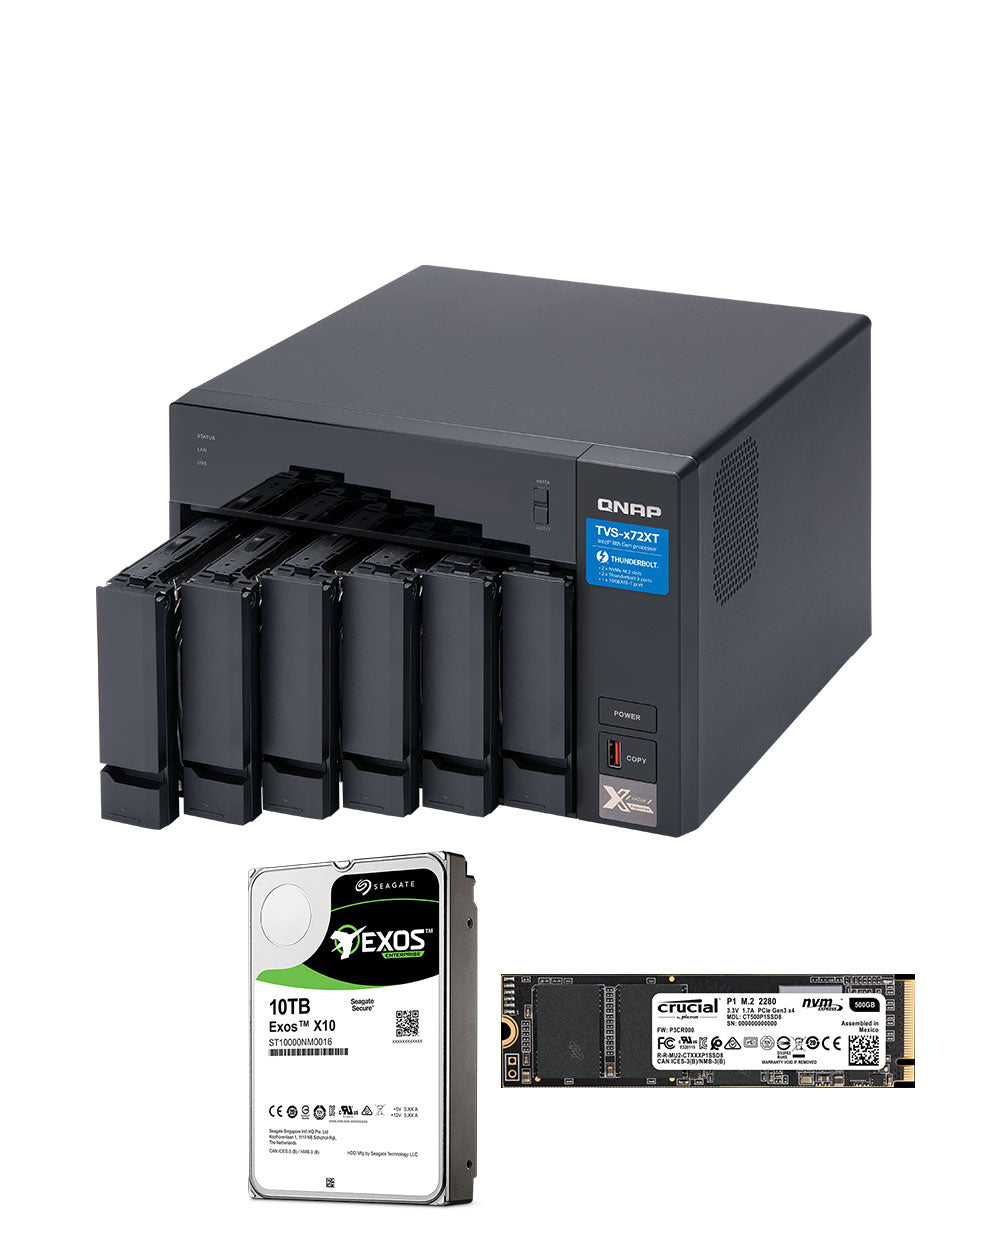 QNAP TVS-672XT-i3-8G 30TB with 10TB Exos Helium Drives and 2 x 500GB NVMe